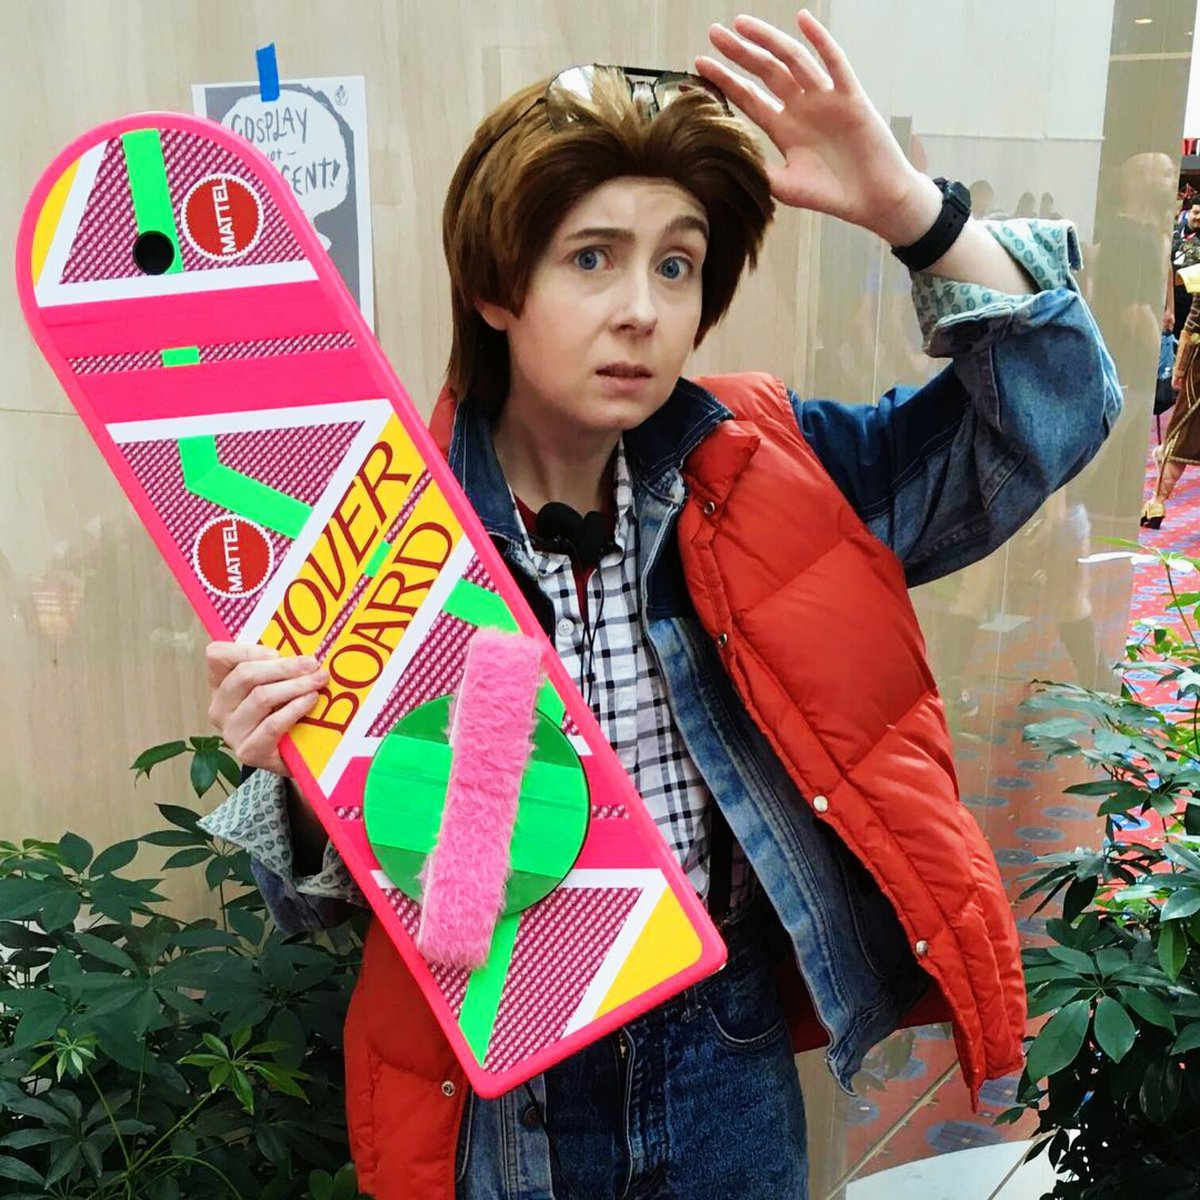 Female marty mcfly cosplay